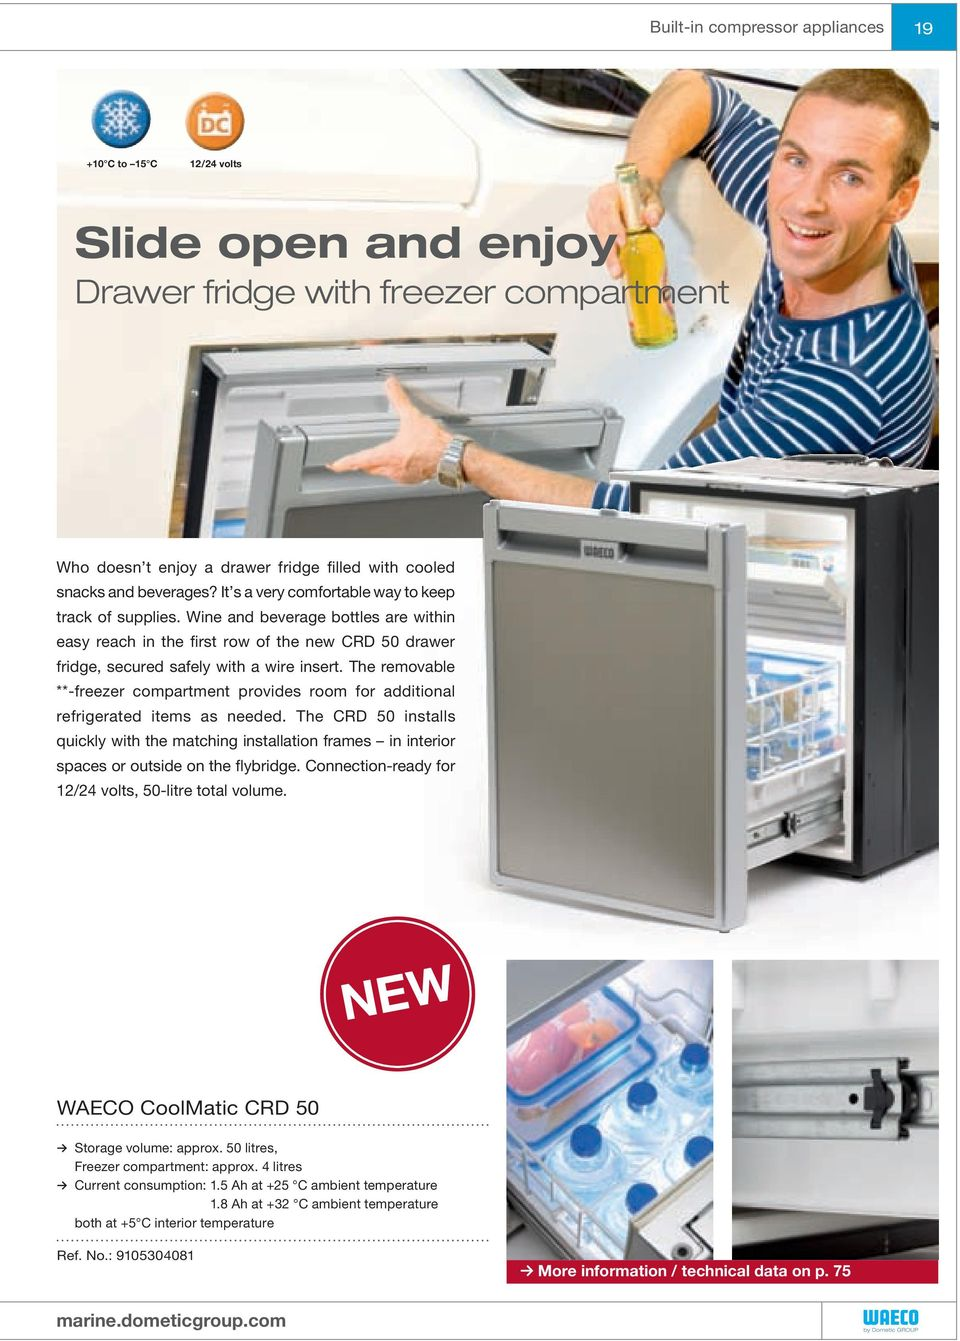 The removable **-freezer compartment provides room for additional refrigerated items as needed.